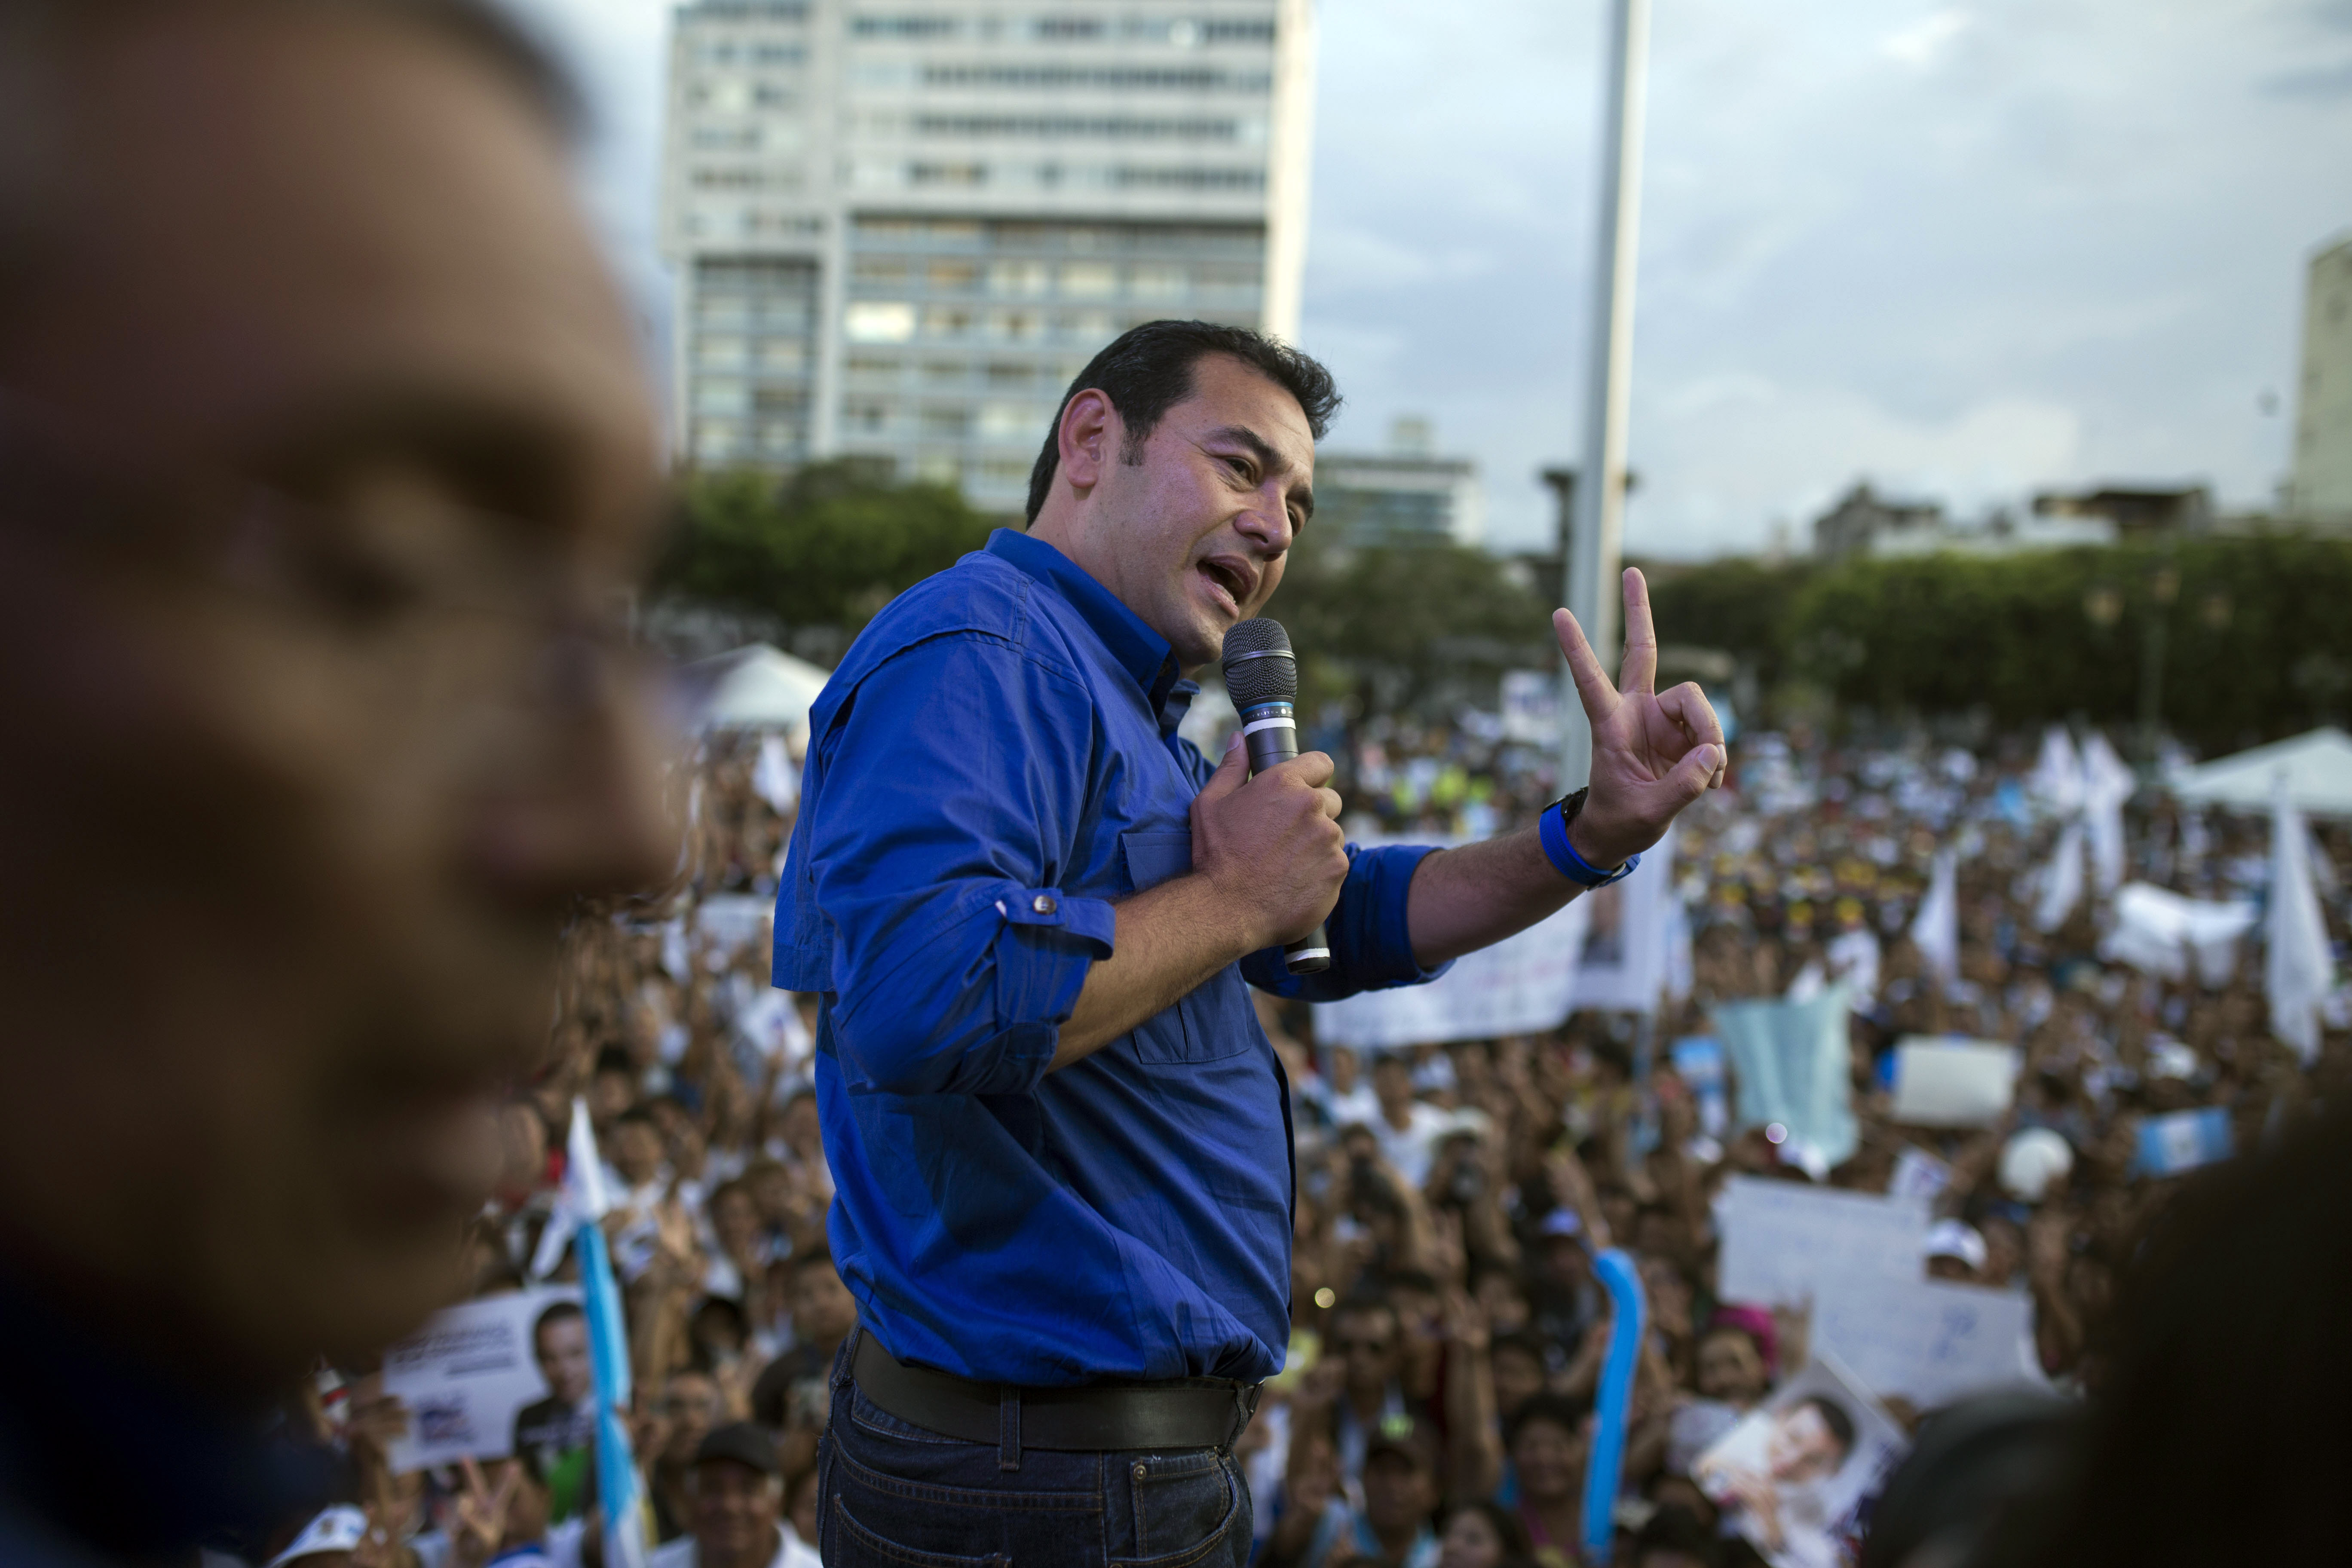 Jimmy Morales, the National Front of Convergence party presidential candidate, gives a victory sign as he speaks to supporters during a campaign rally in Guatemala City on Oct. 22, 2015